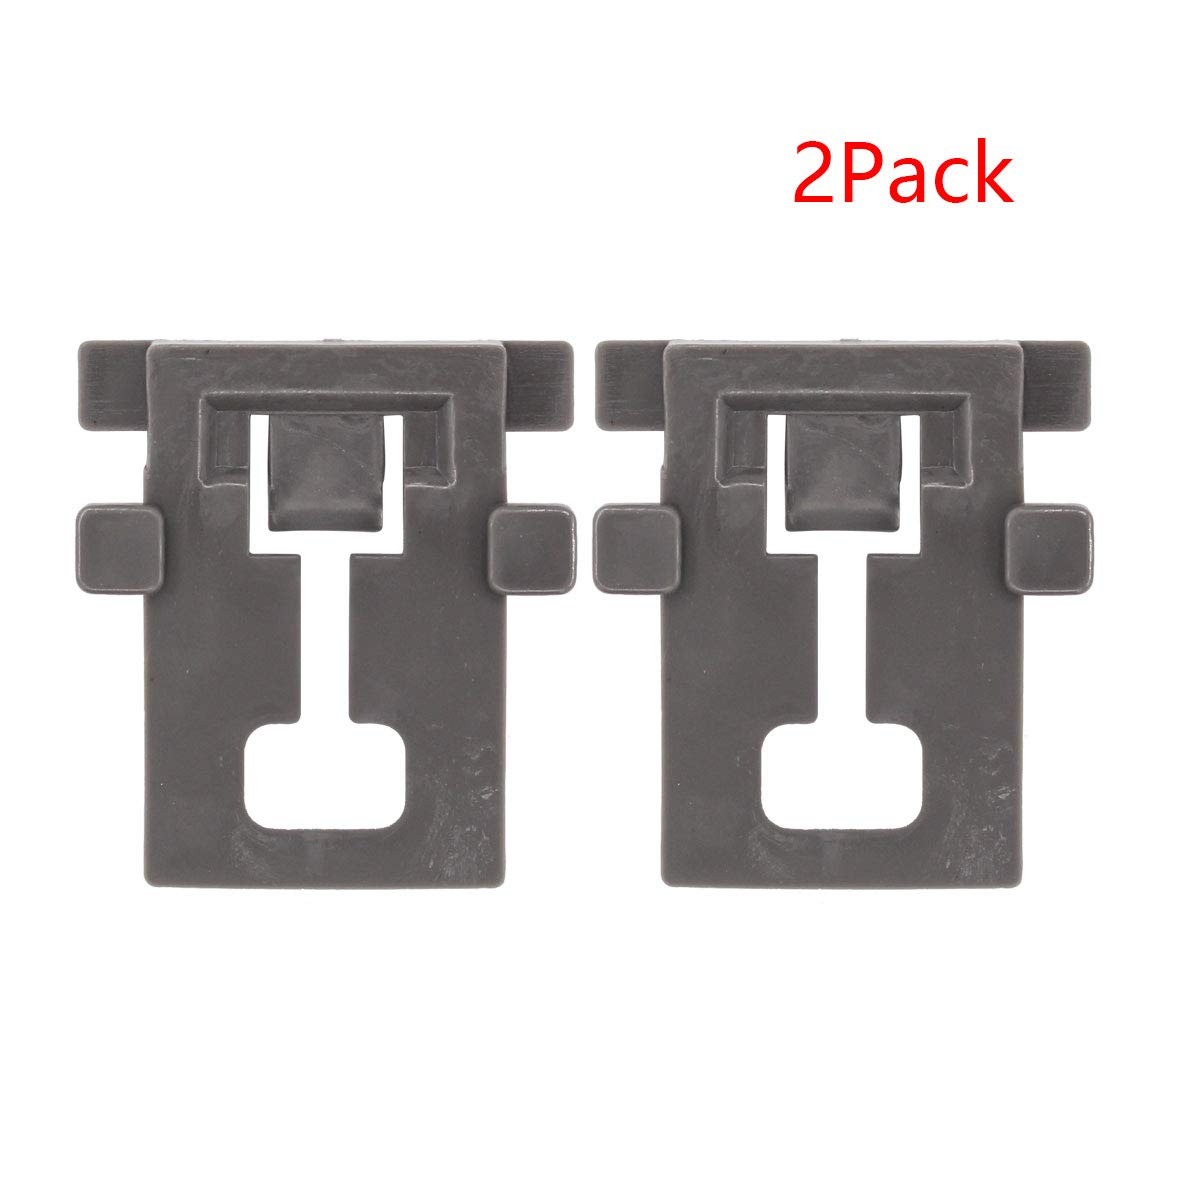 ApplianPar 2 Pack W10195840 Dishwasher Rack Adjuster Positioner Replacement for Whirlpool Kenmore Kitchenaid WPW10195840